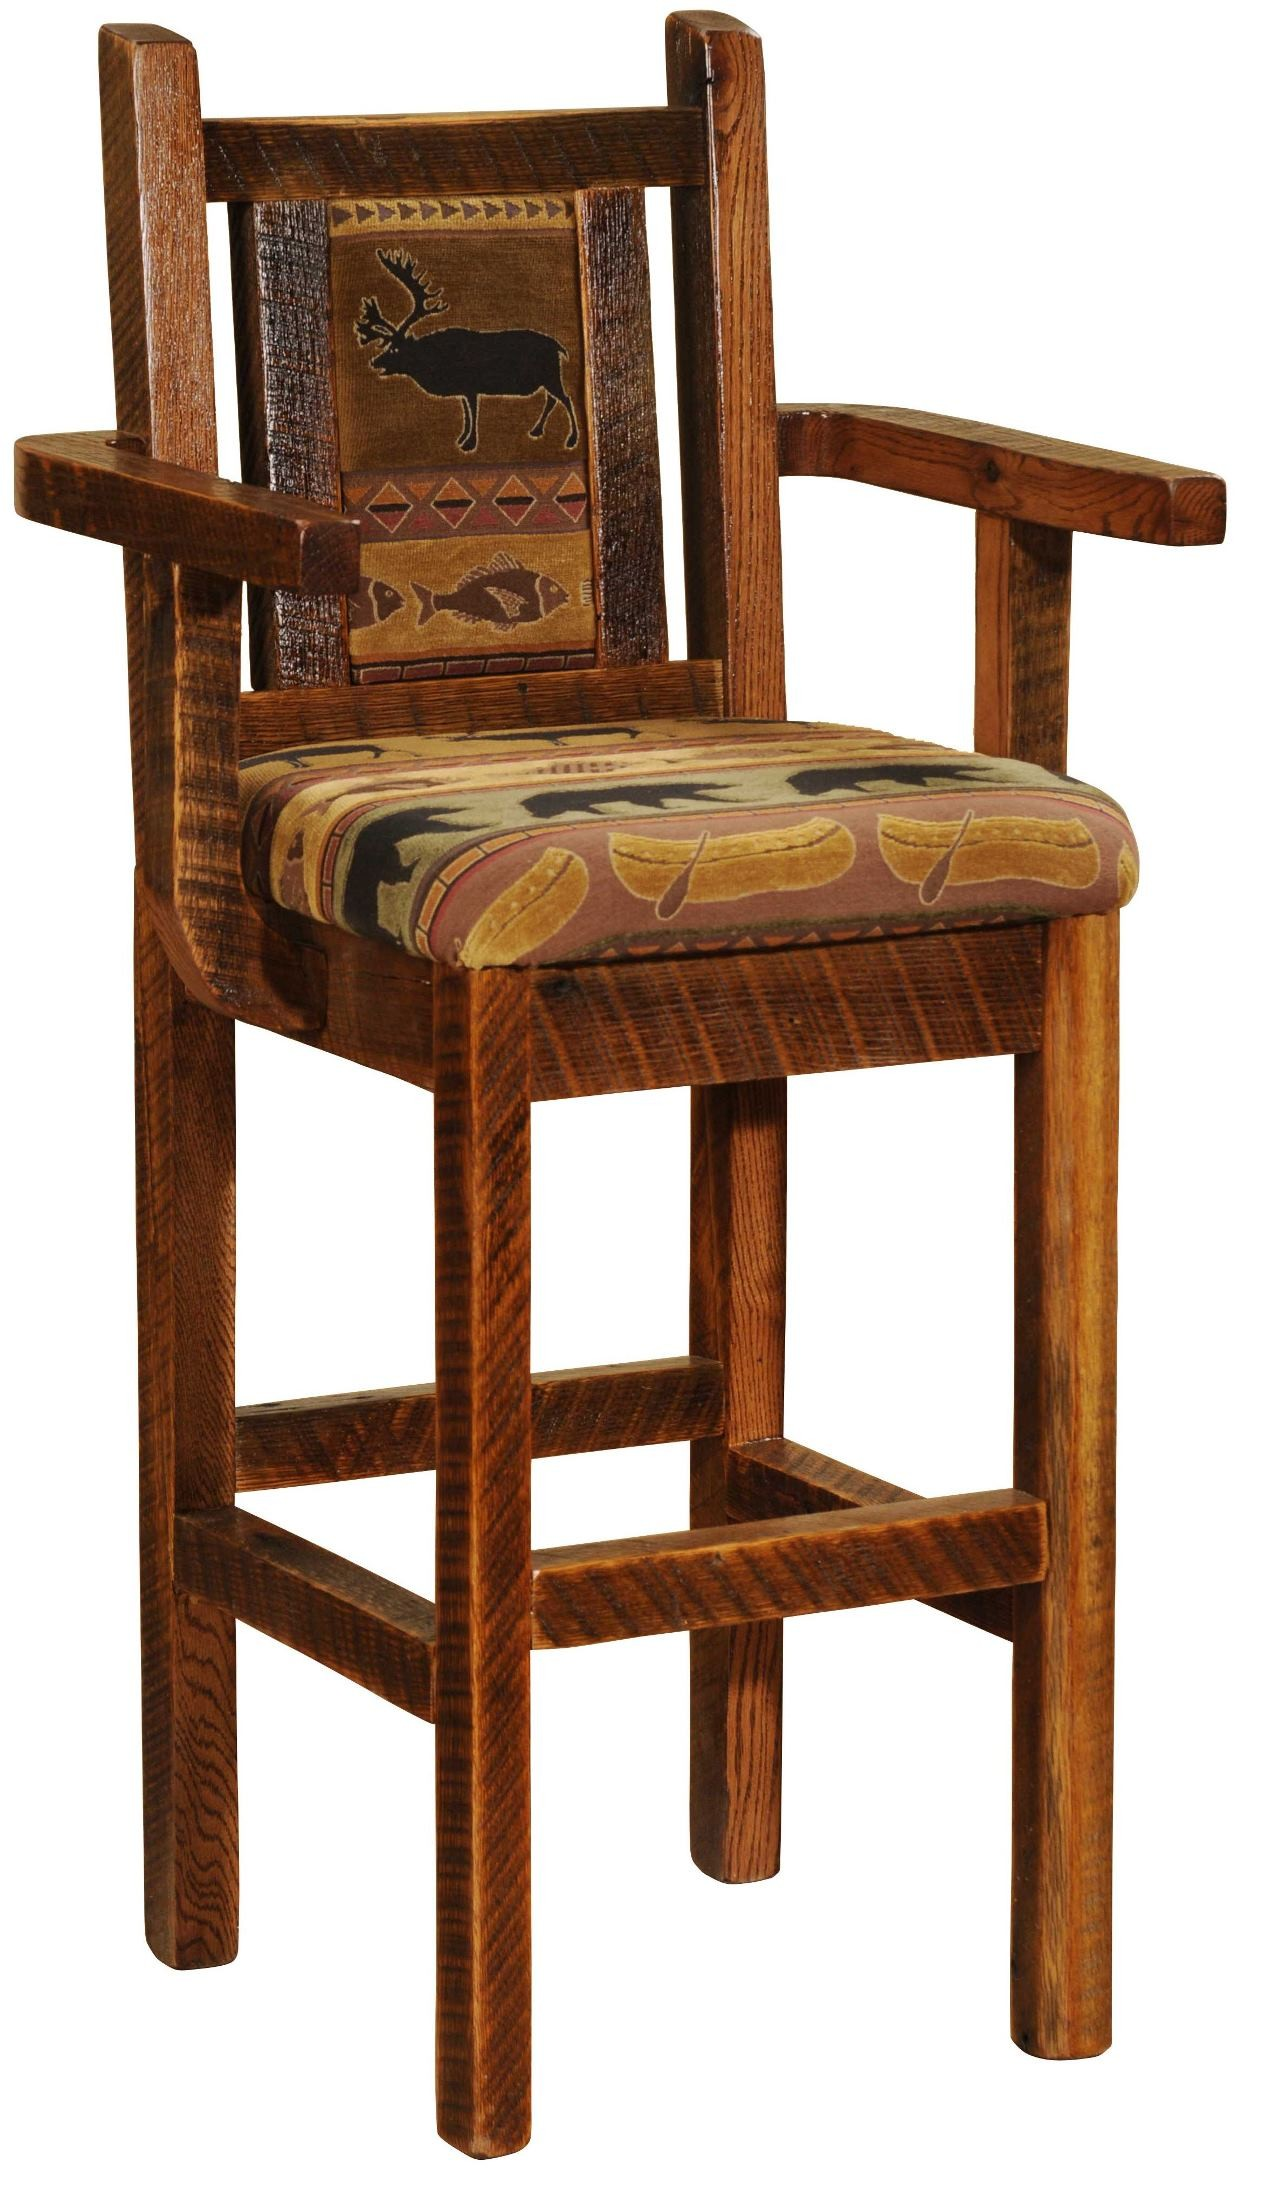 Barnwood artisan 30 arm upholstered bar stool from fireside lodge b16421 coleman furniture Artisan home furniture bar stools